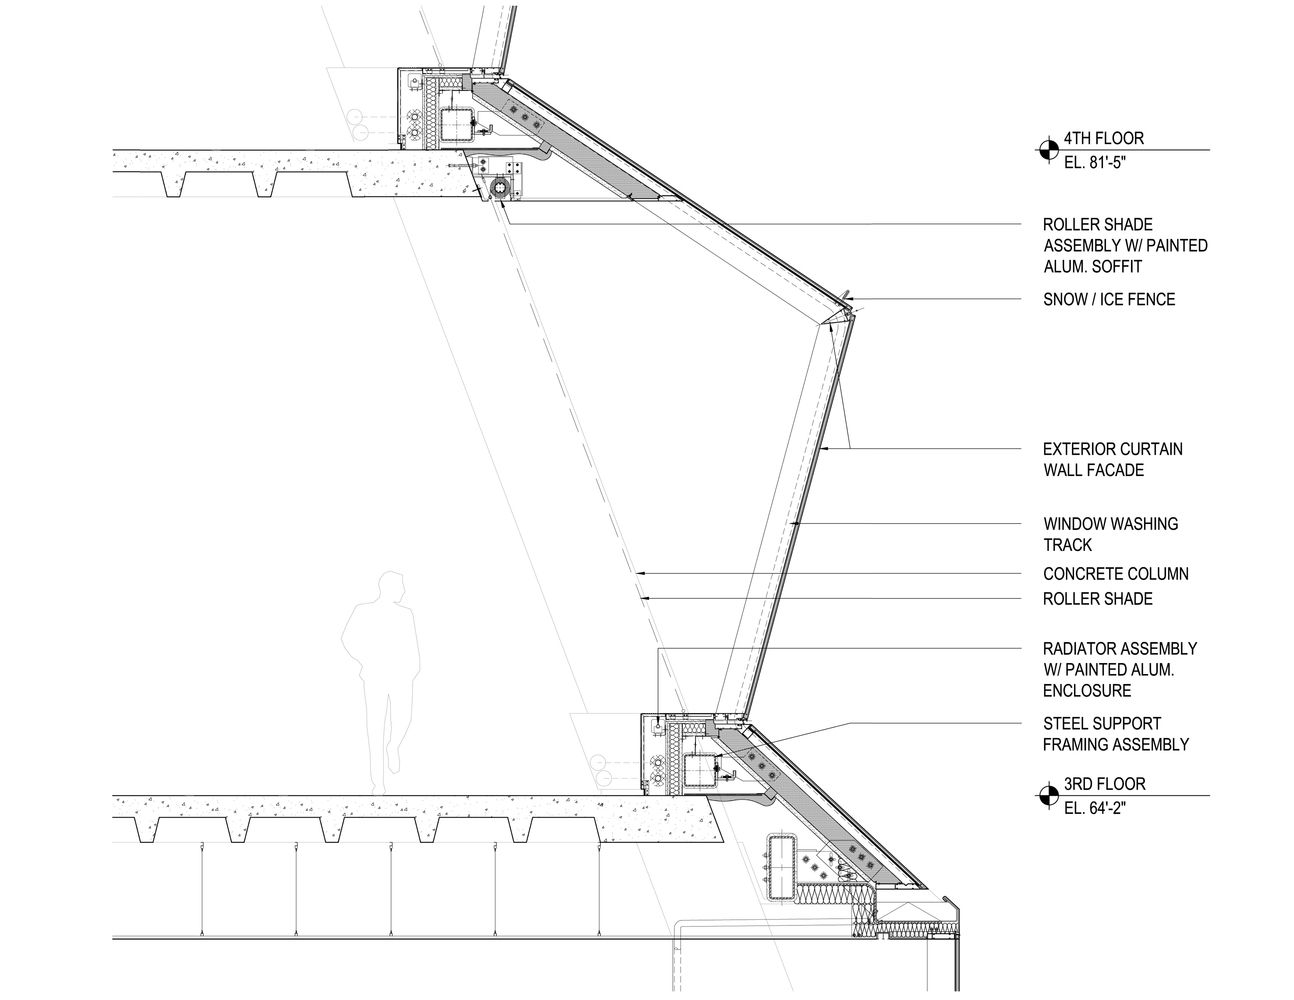 Curtain Wall Detail Bing Images Curtain Wall Detail Roof Detail Wall Section Detail